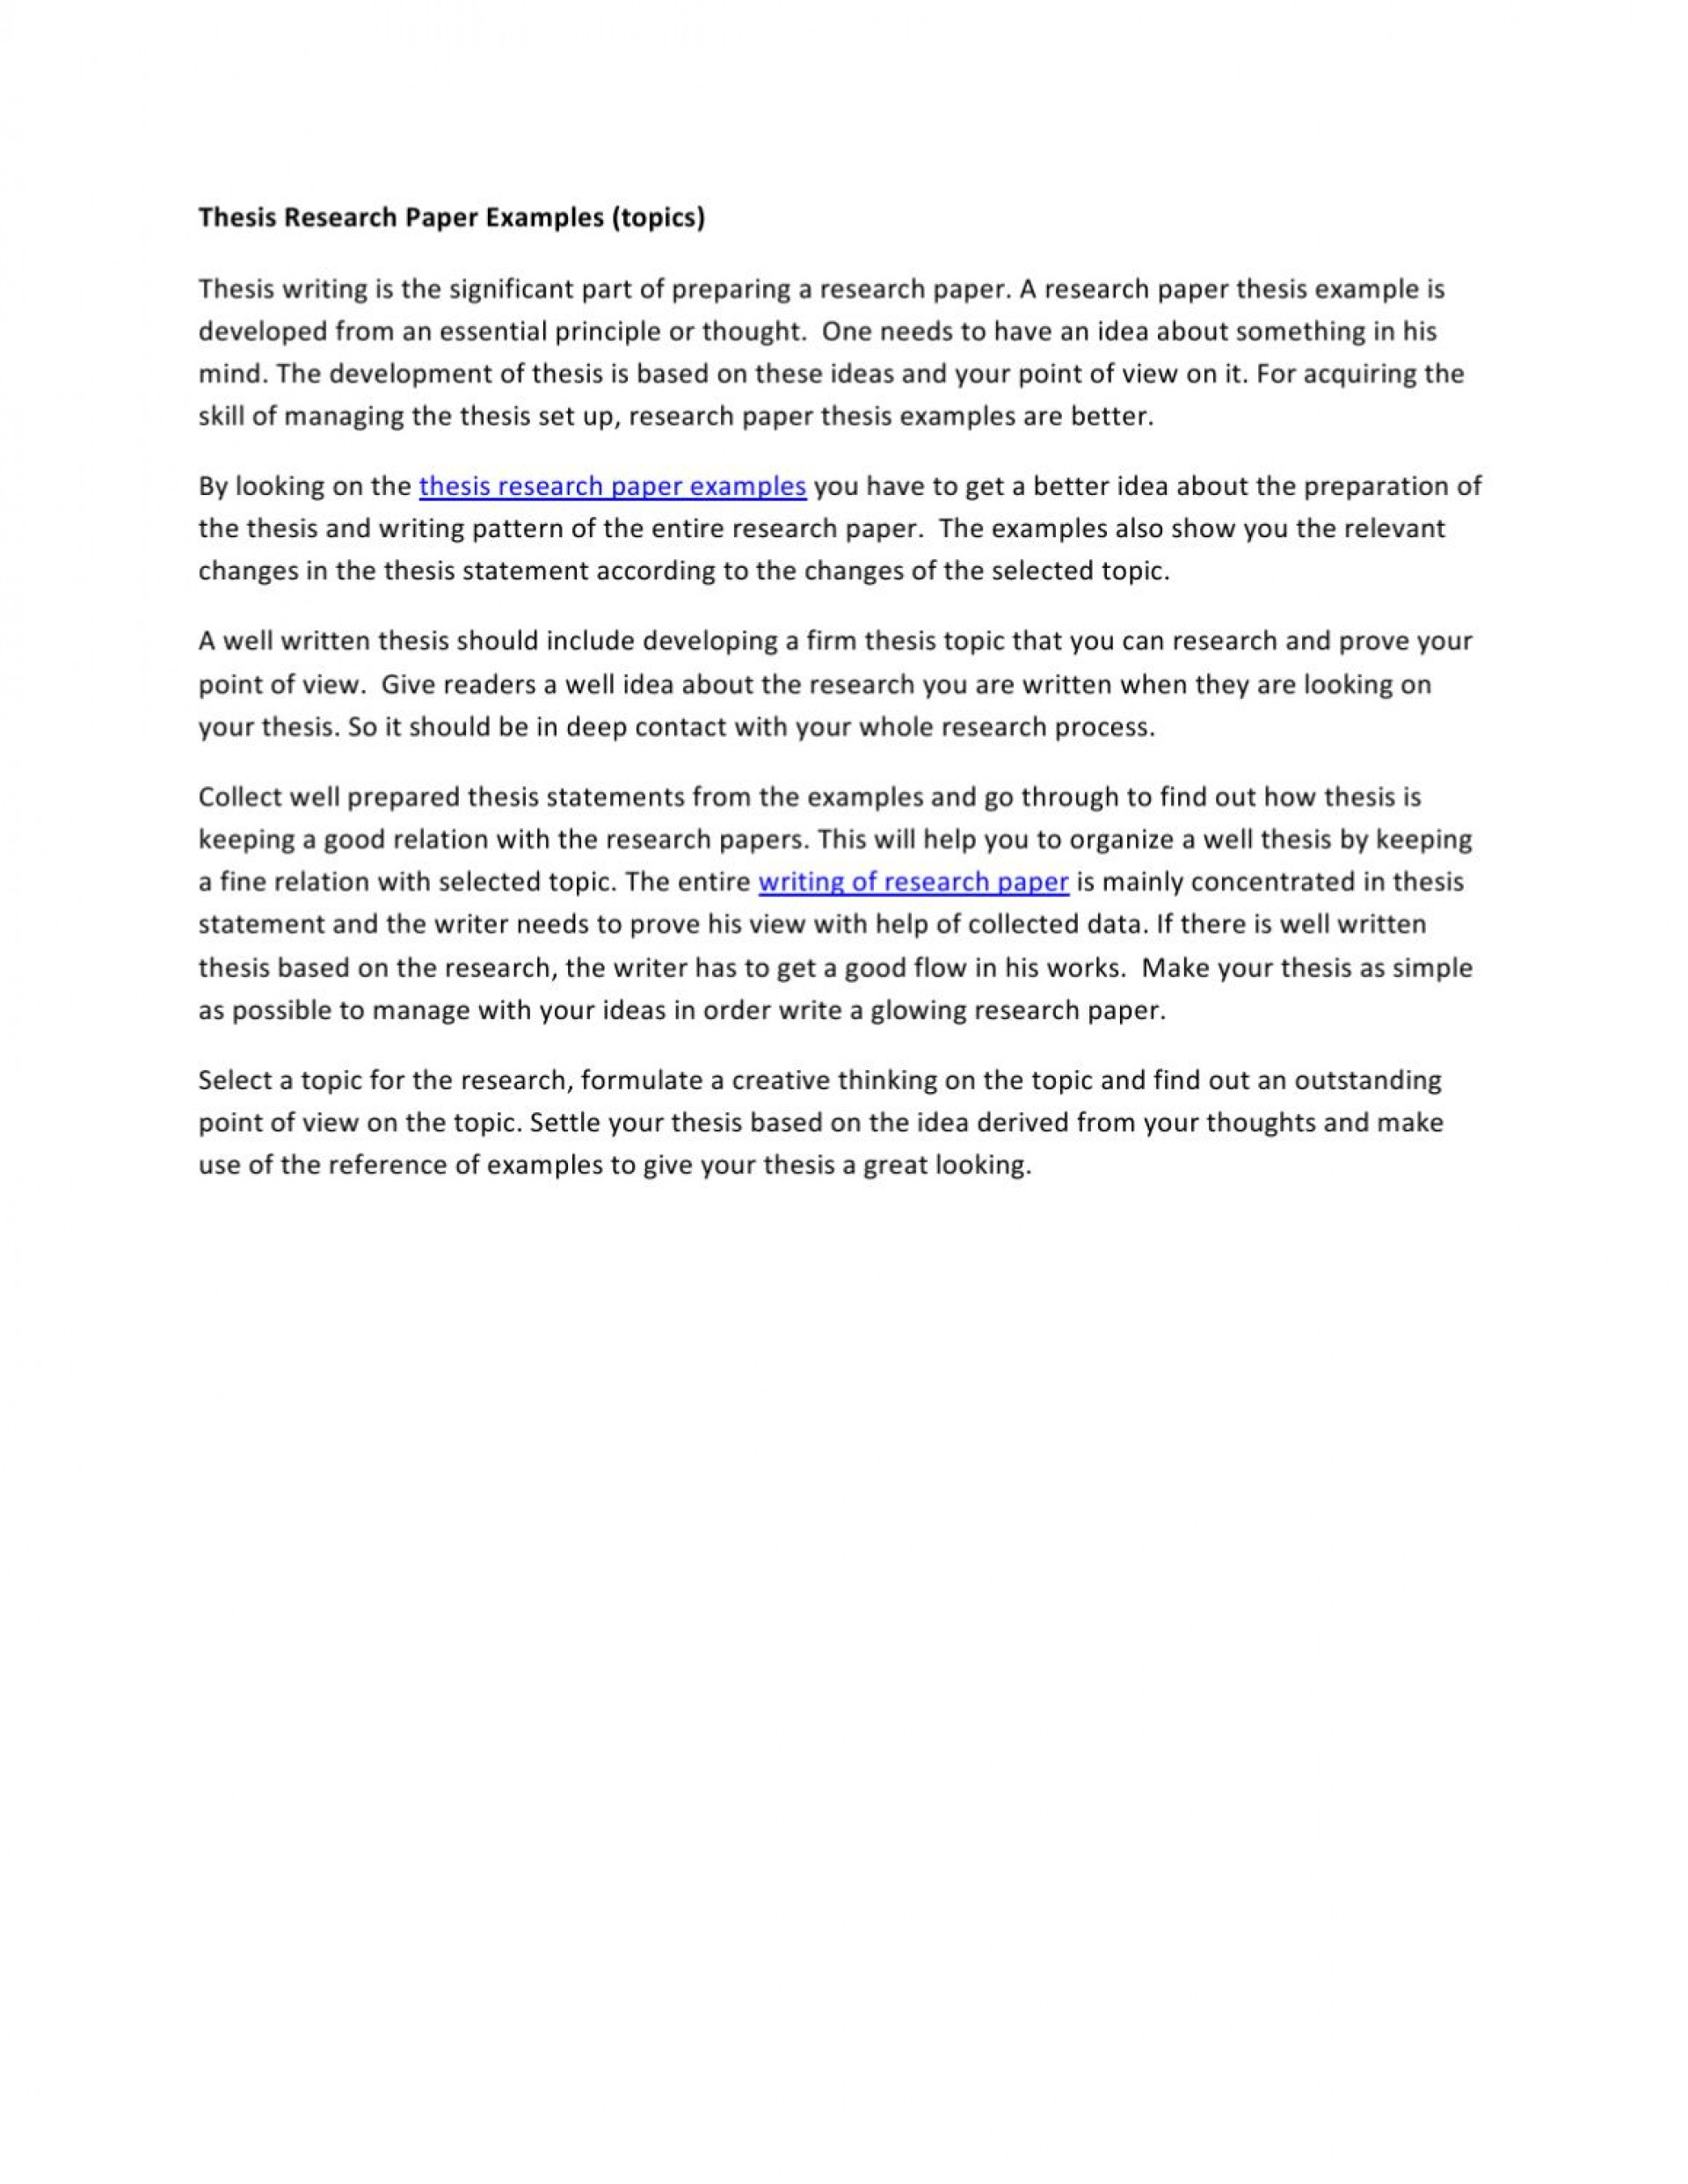 028 Ideas For Research Paper Page 1 Shocking A Topics Writing Good Social Psychology 1920